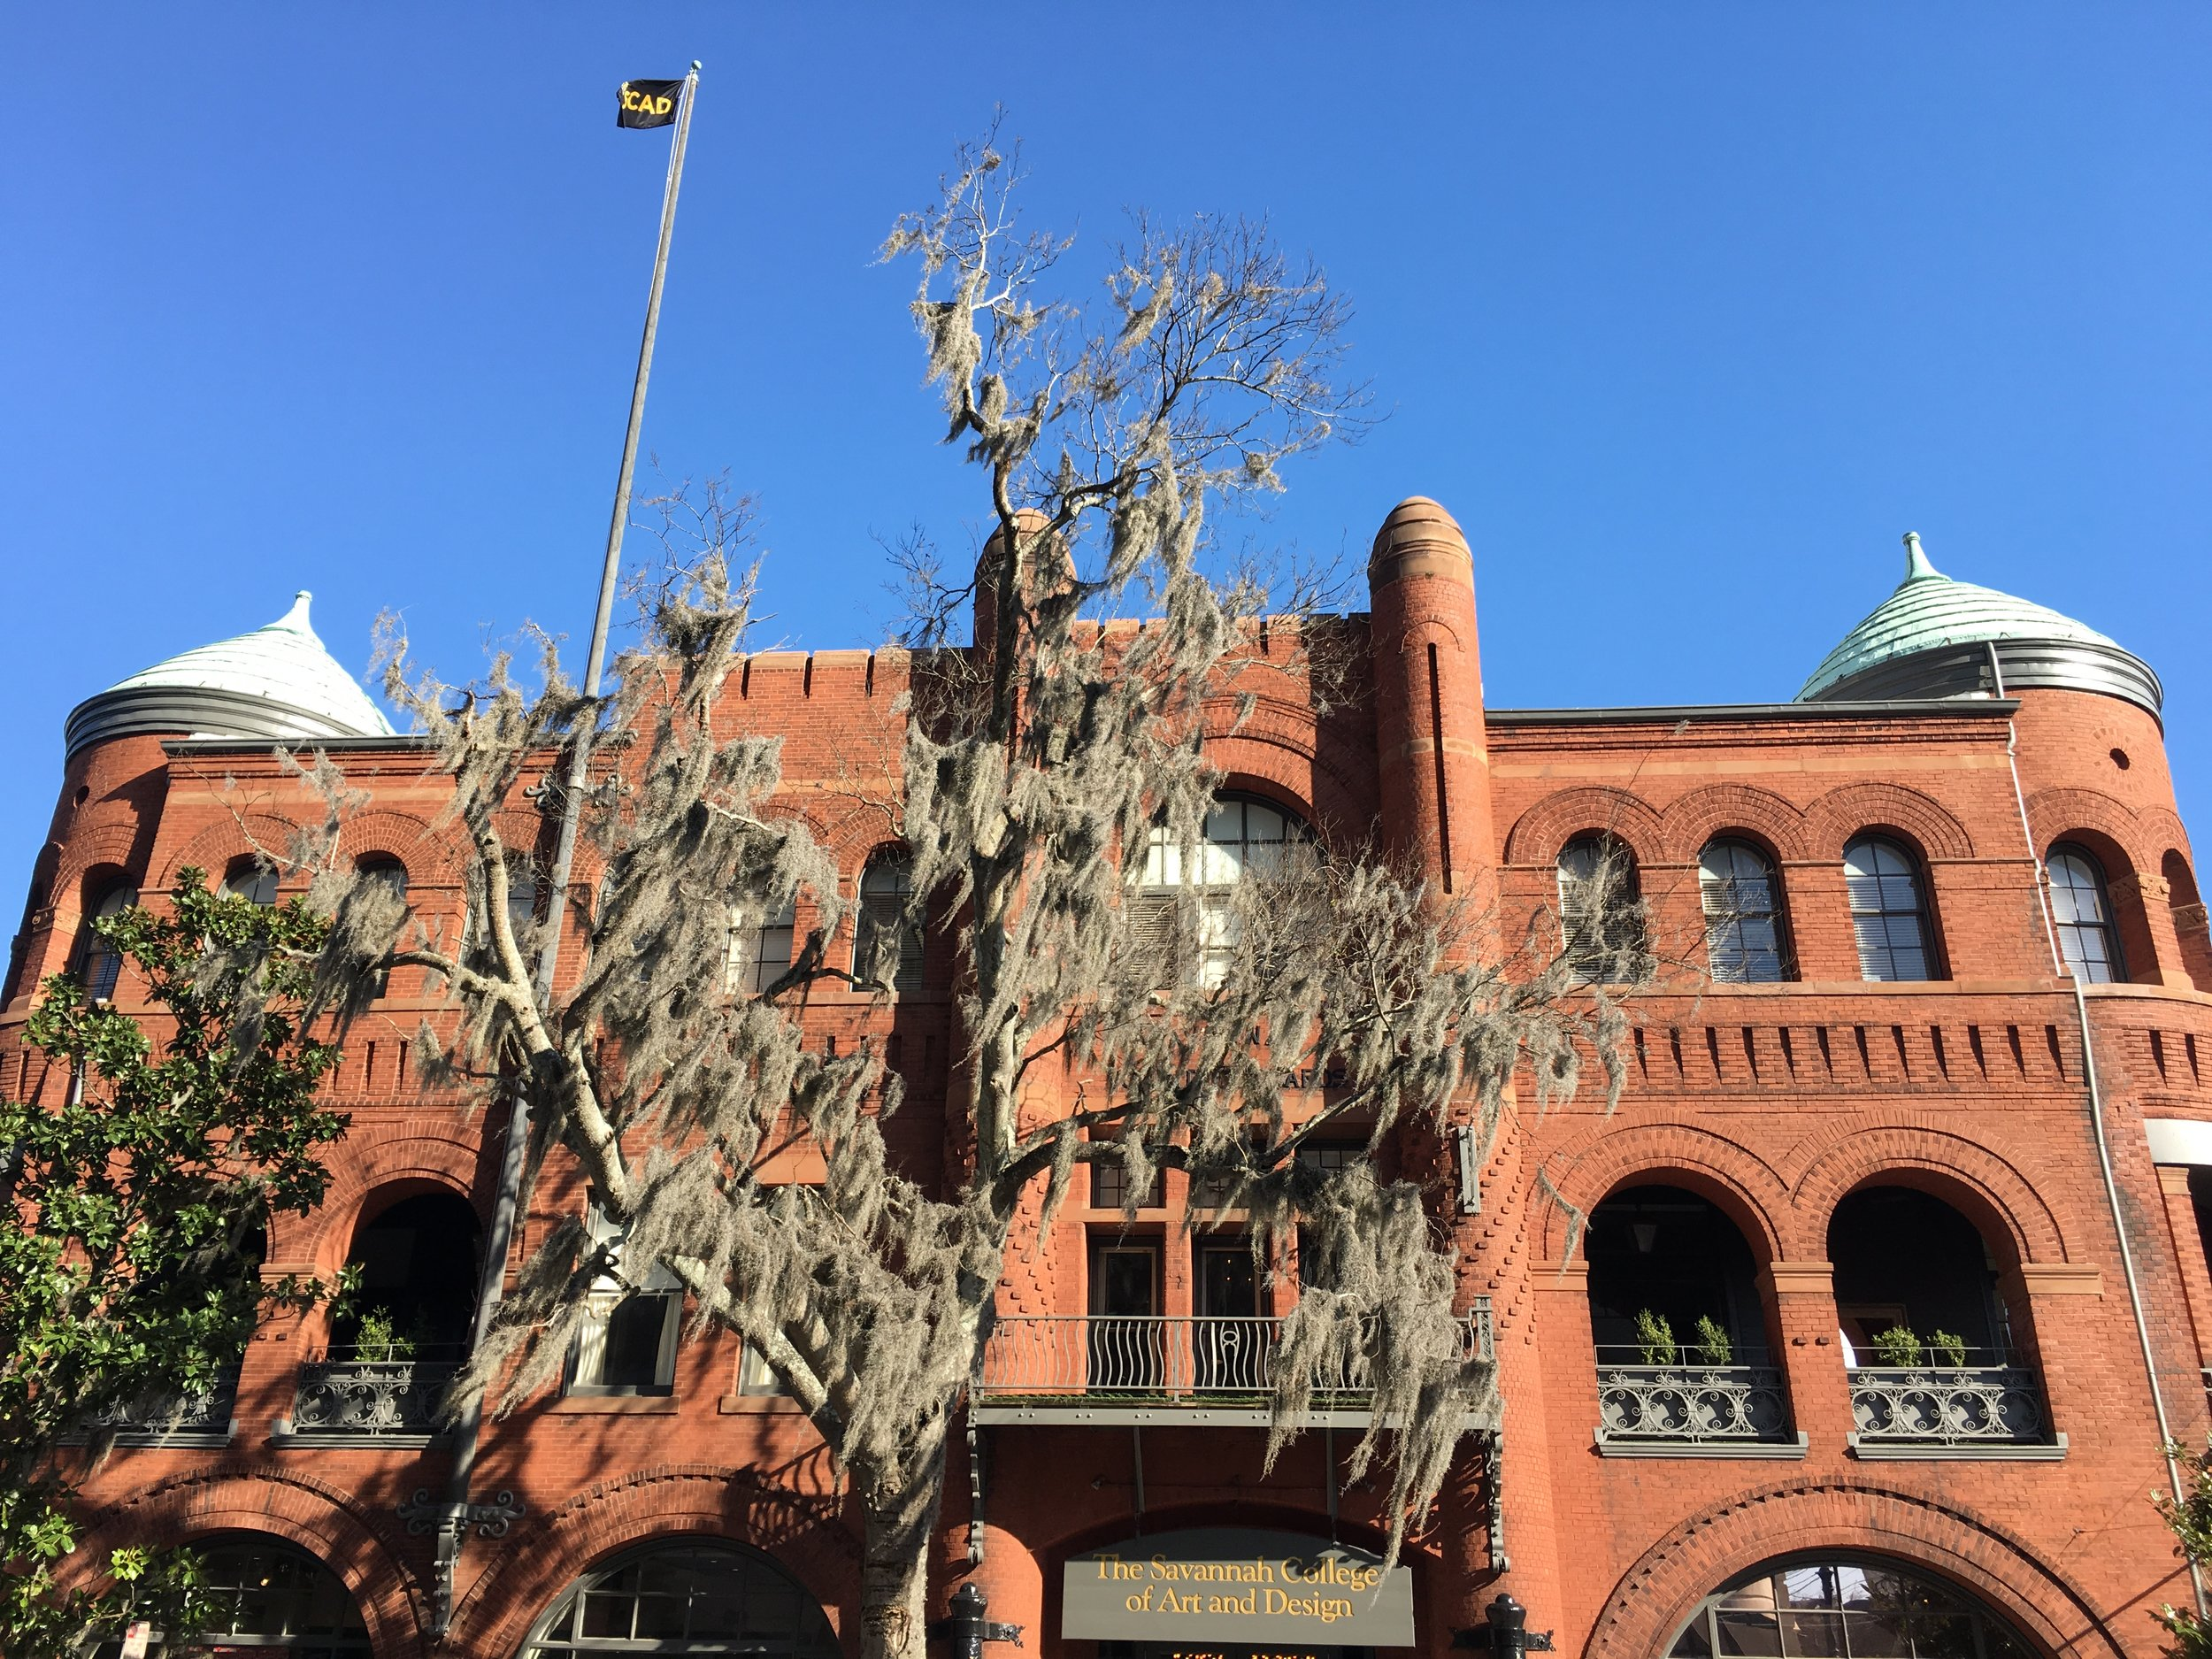 Savannah College of Art and Design has undertaken expansion by renovating historic buildings all over the city, including their first building, the old armory, where the museum and gallery is located.